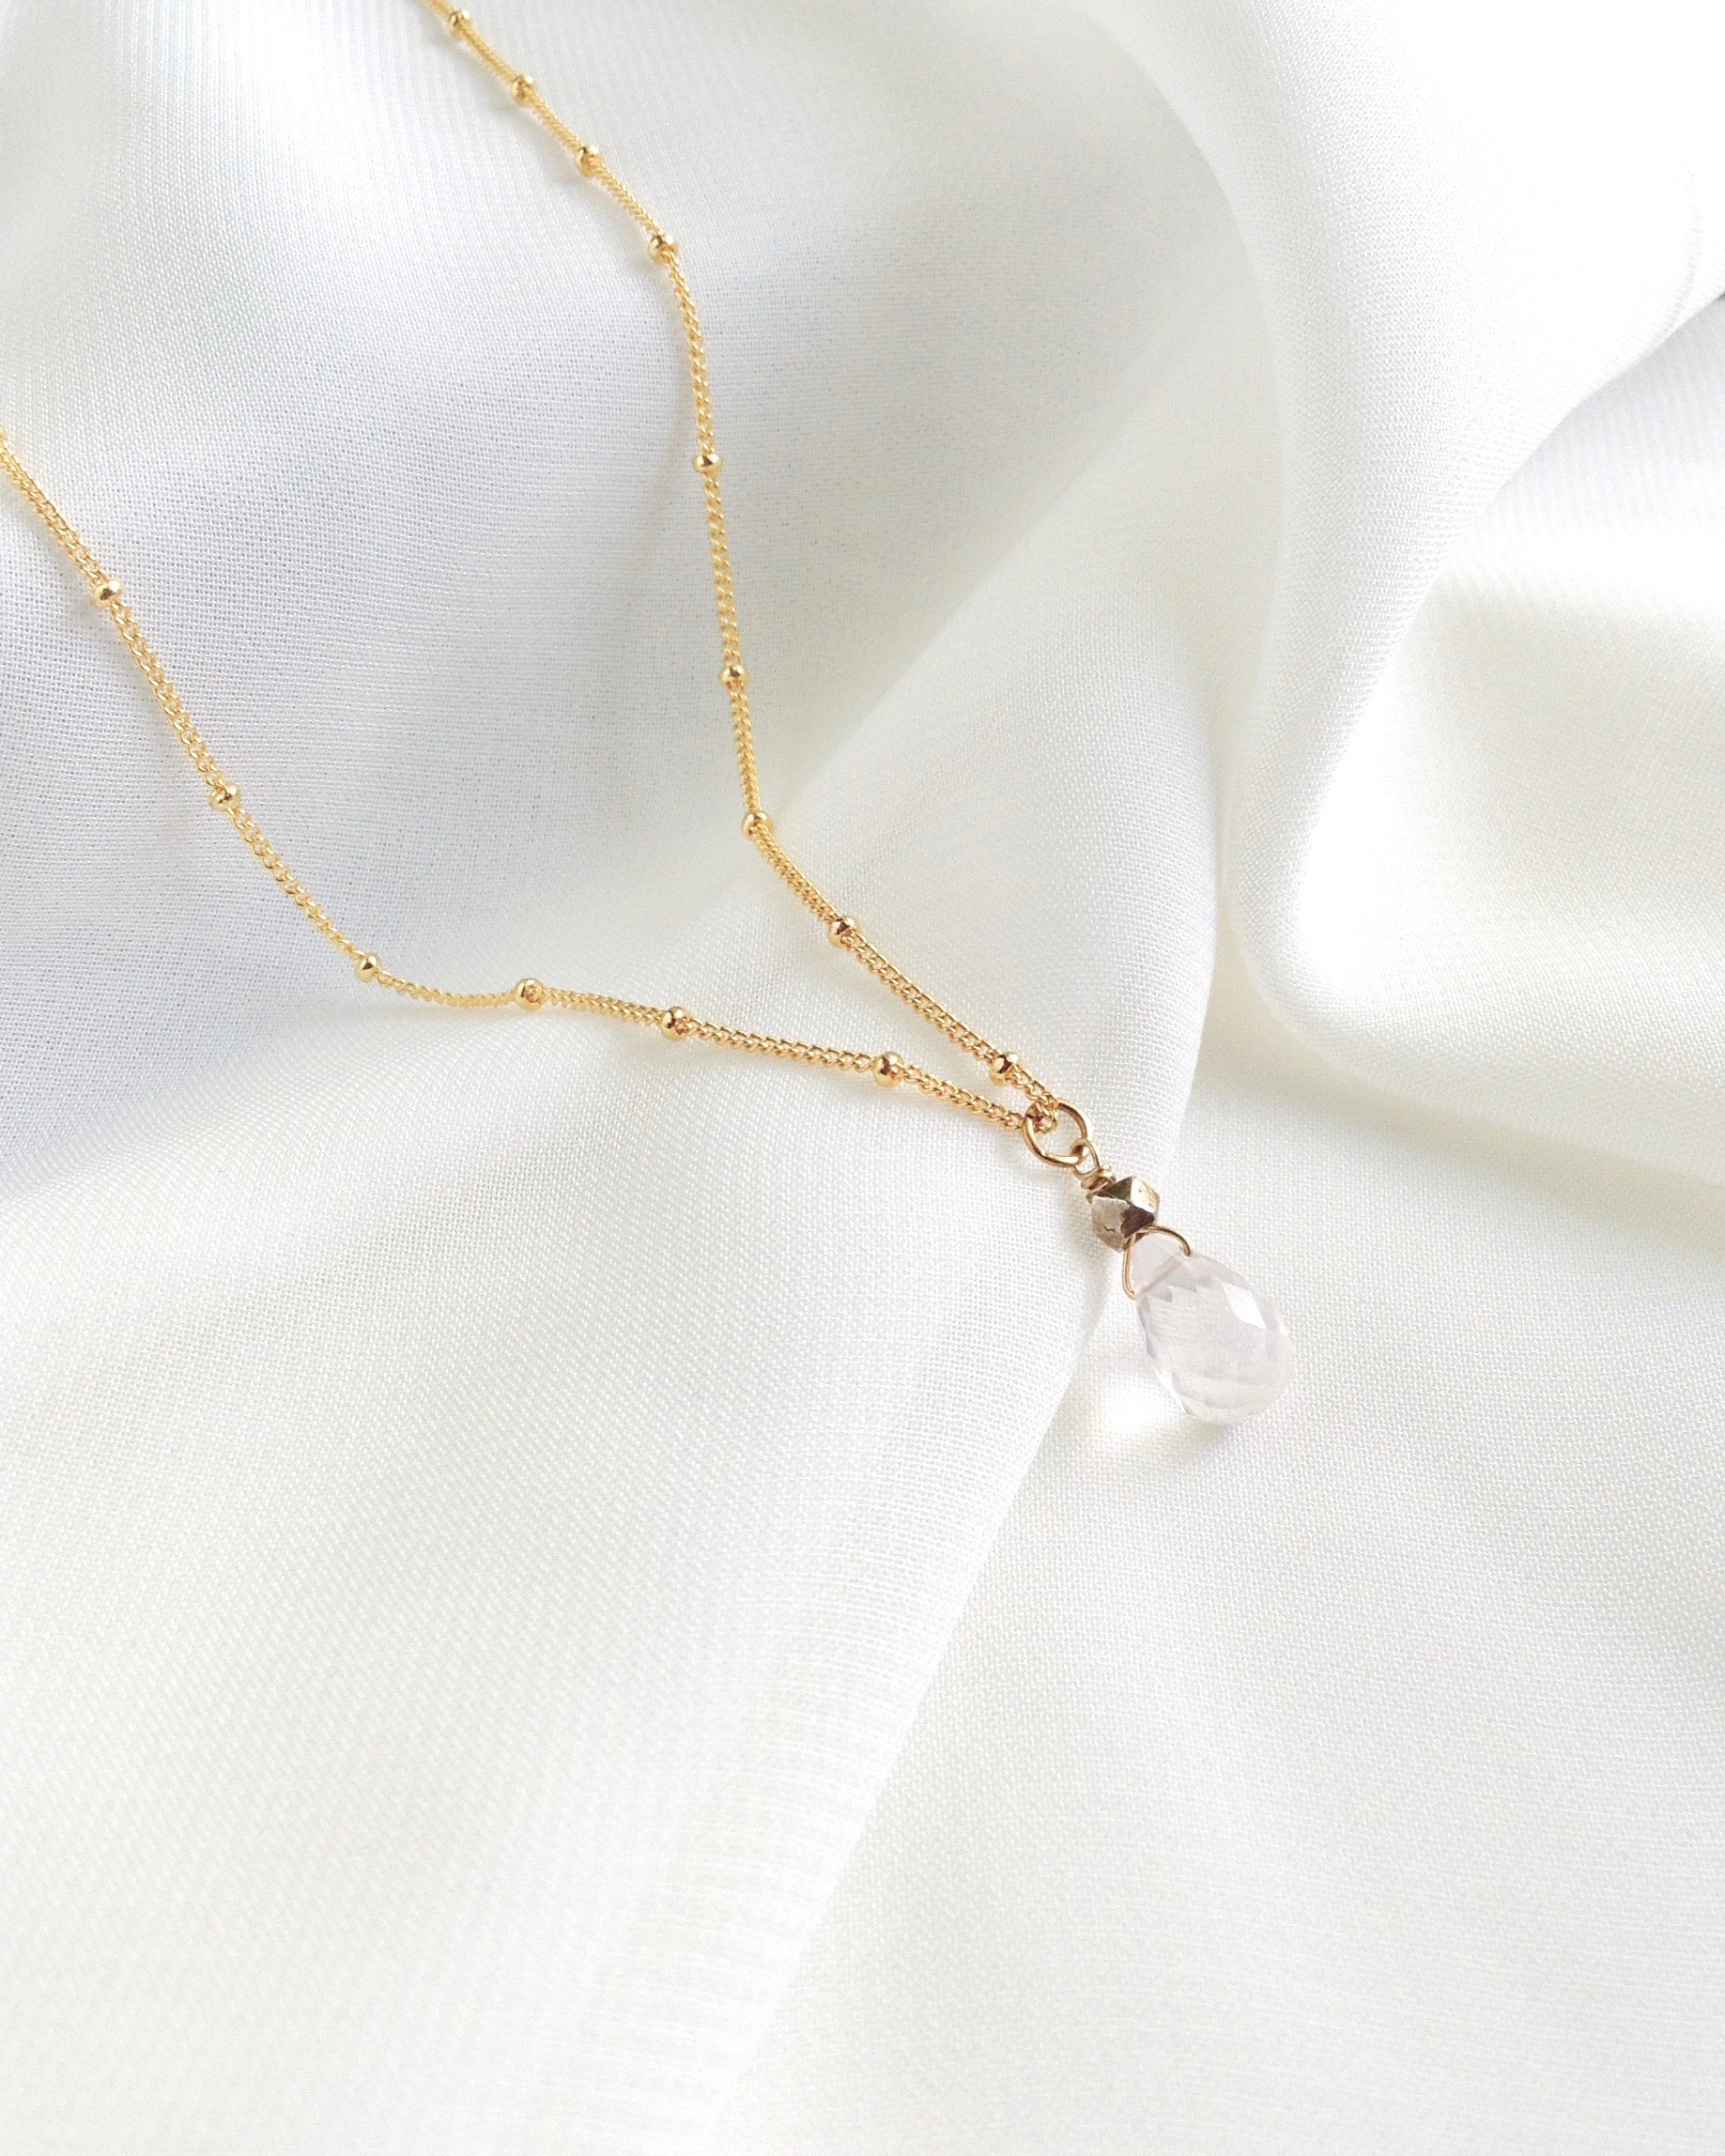 Rose Quartz Crystal Necklace in Gold Filled or Sterling Silver | IB Jewelry